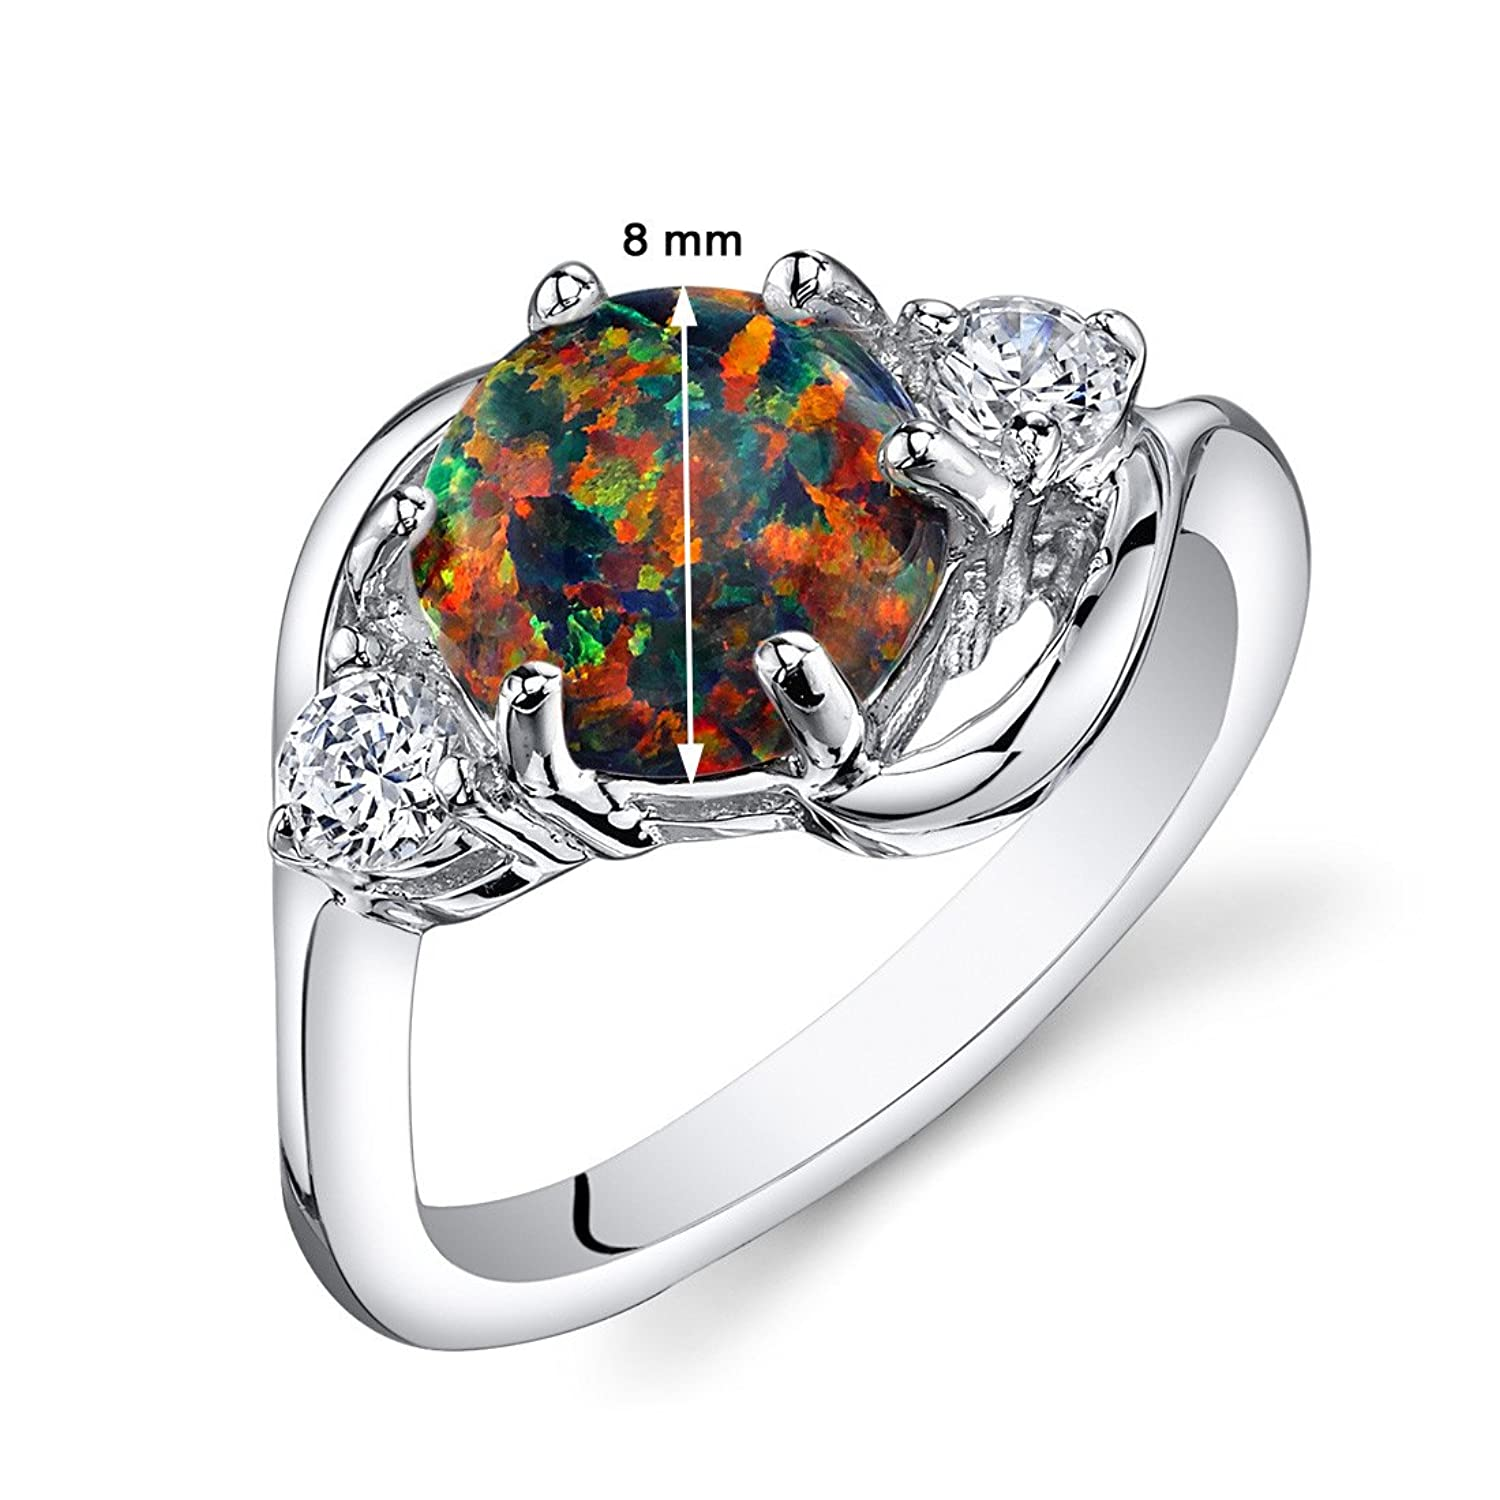 amazoncom created black opal ring sterling silver 3 stone 175 carats sizes 5 to 9 jewelry - Black Opal Wedding Rings